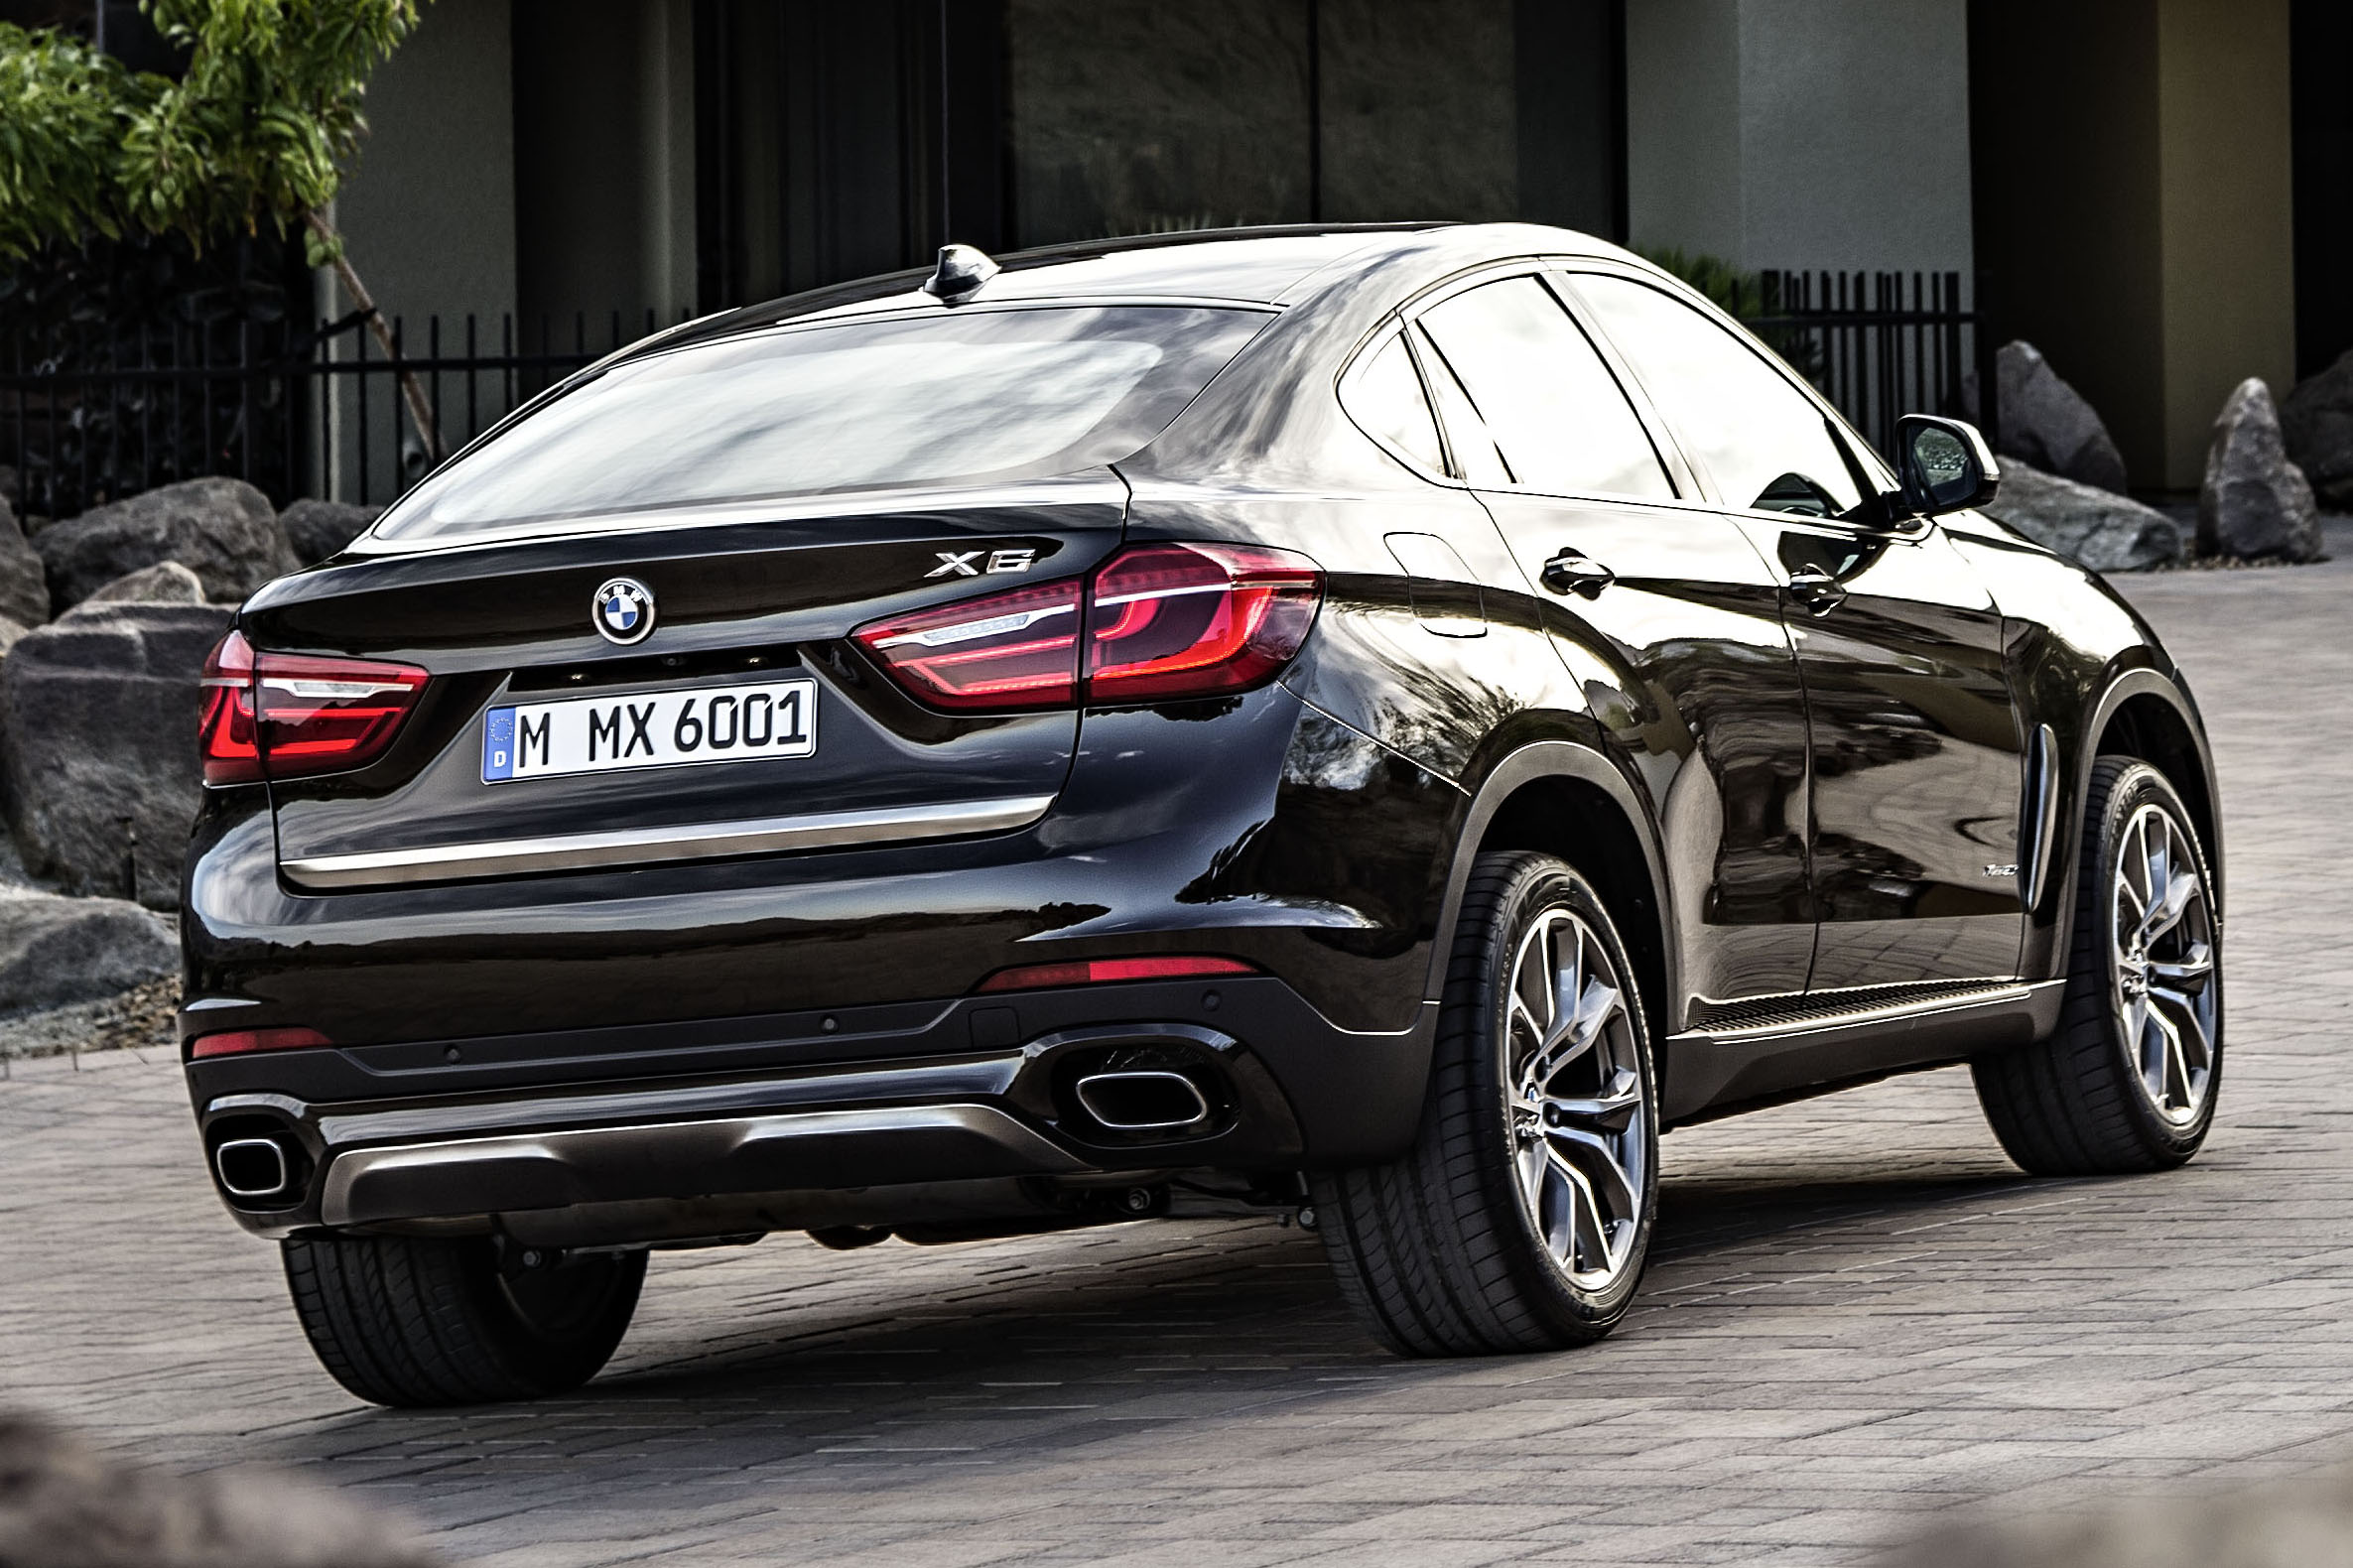 Bmw X6 Second Gen F16 Makes Its Official Debut Image 252267